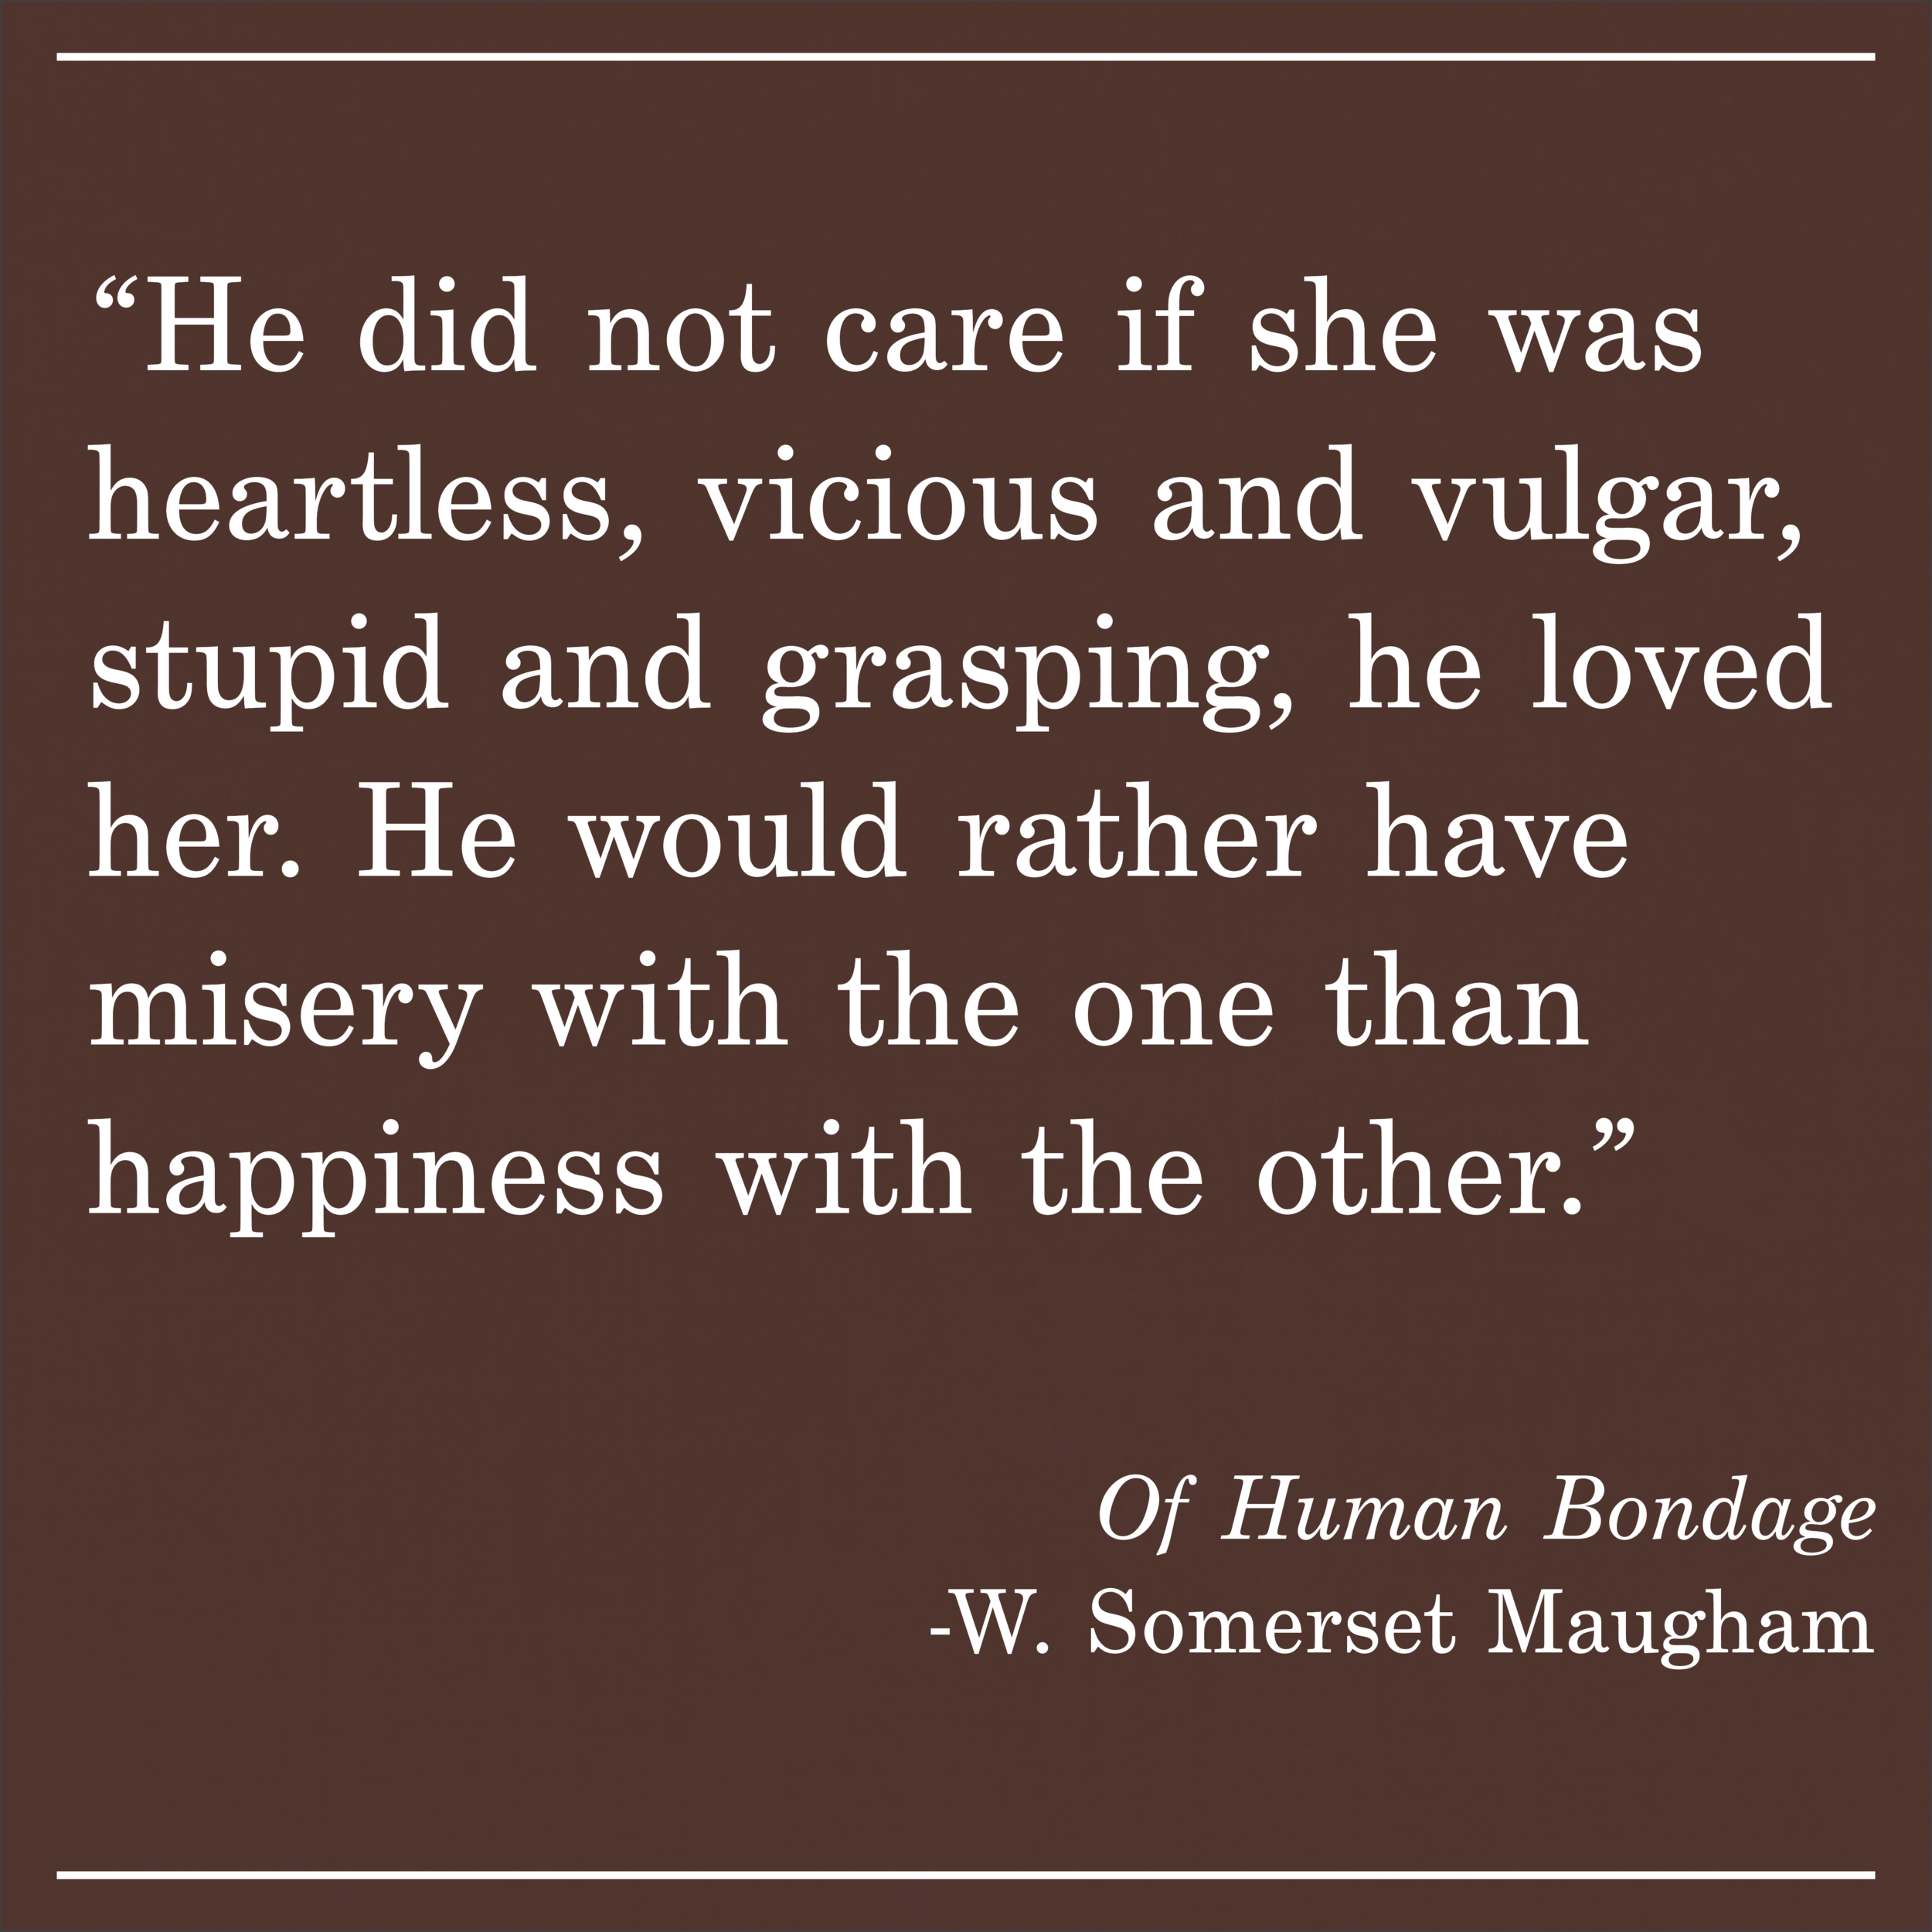 Daily Quote Of Human Bondage by W. Somerset Maugham